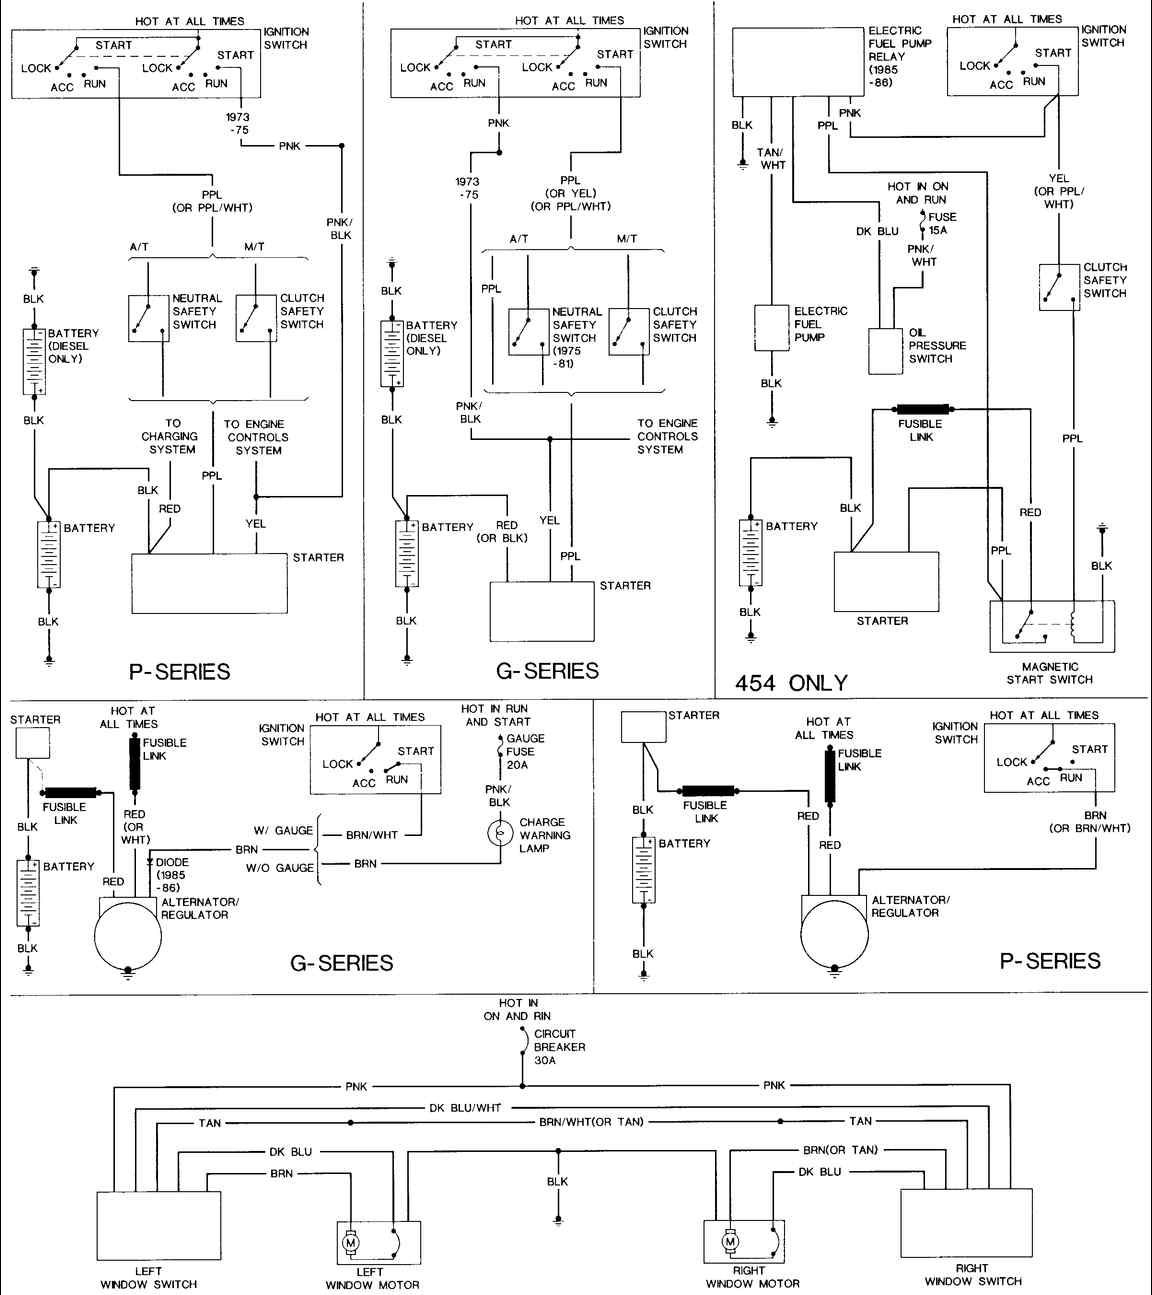 85 Chevy Truck Wiring Diagram Vanthe Steering Column 1967 Chevelle Ss Schematic And Started It By Pushingrod